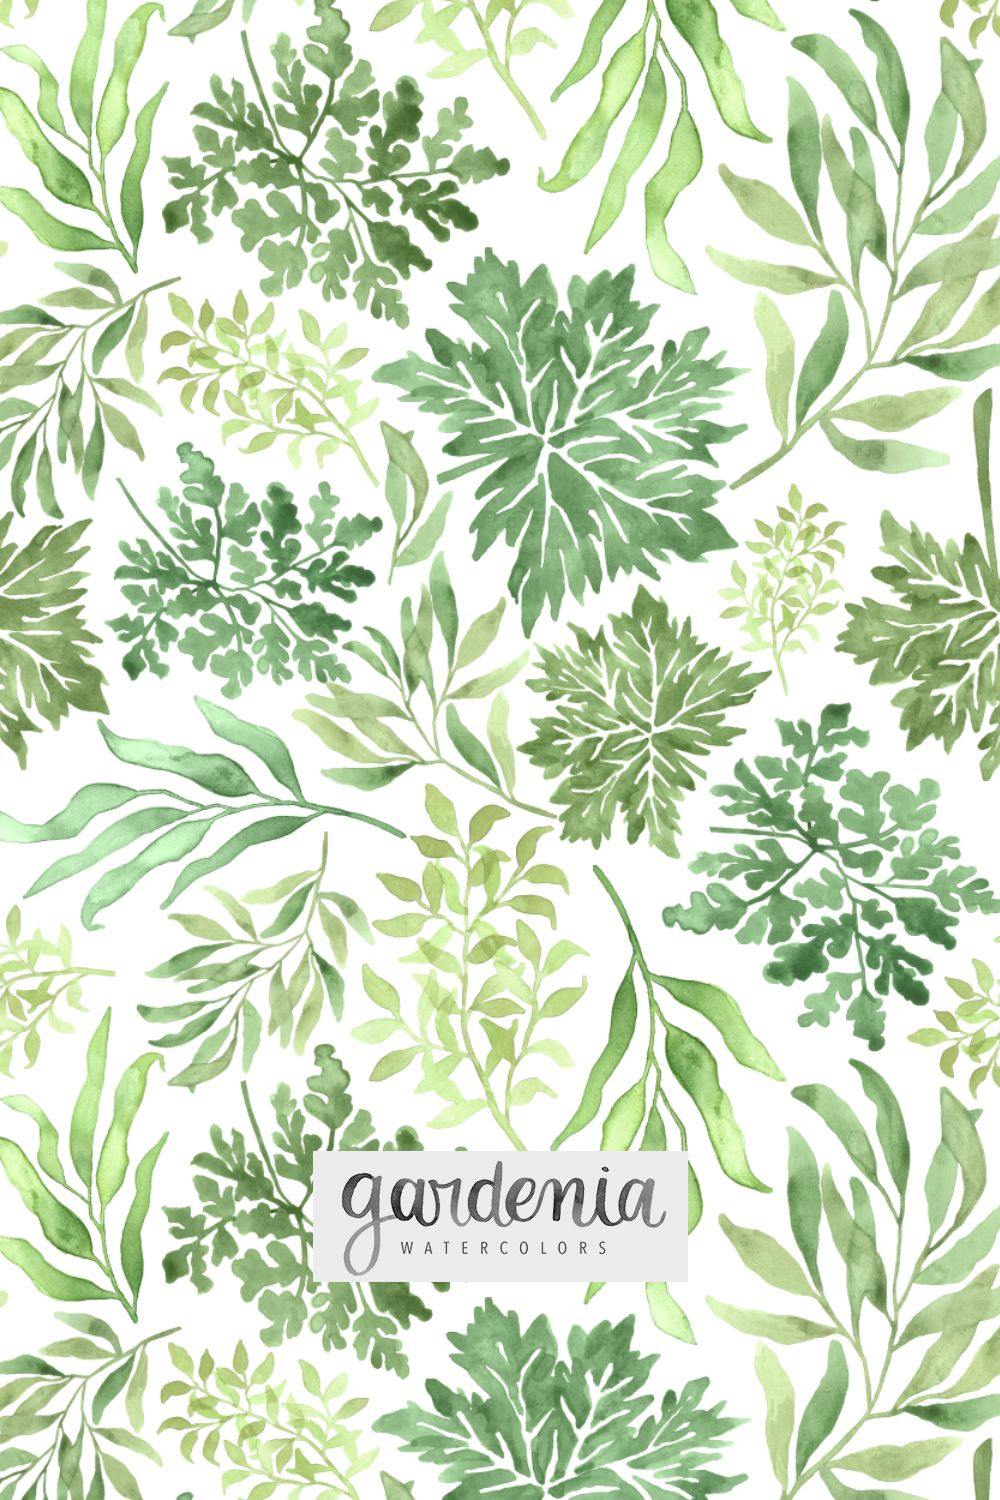 Gardenia Watercolors Surface Designer Greenery Repeating Pattern